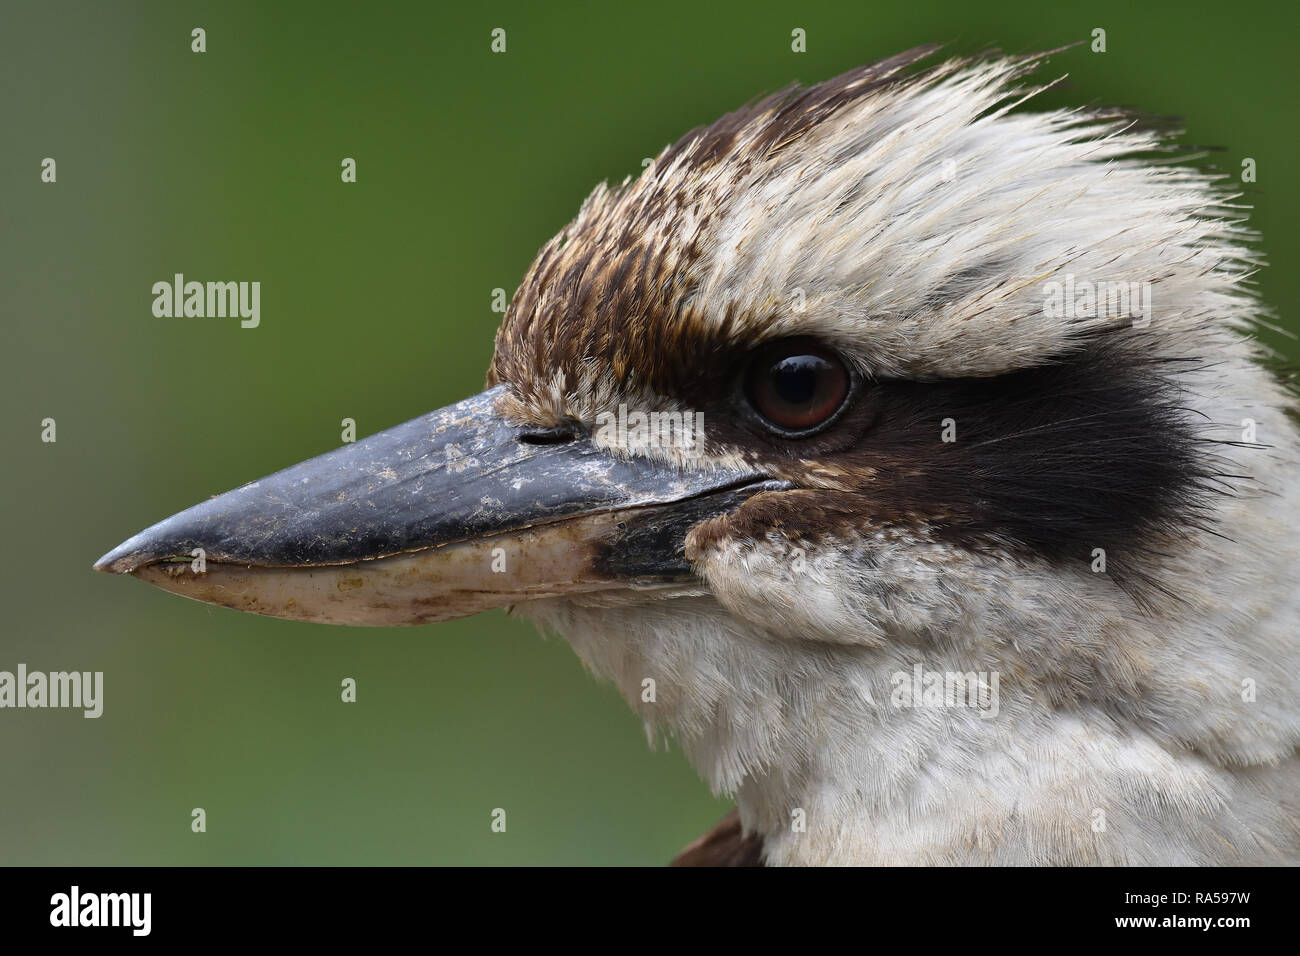 An extreme close-up of an Australian, Queensland Laughing Kookaburra ( Dacelo novaeguineae ) in profile, perched on a tree branch resting - Stock Image